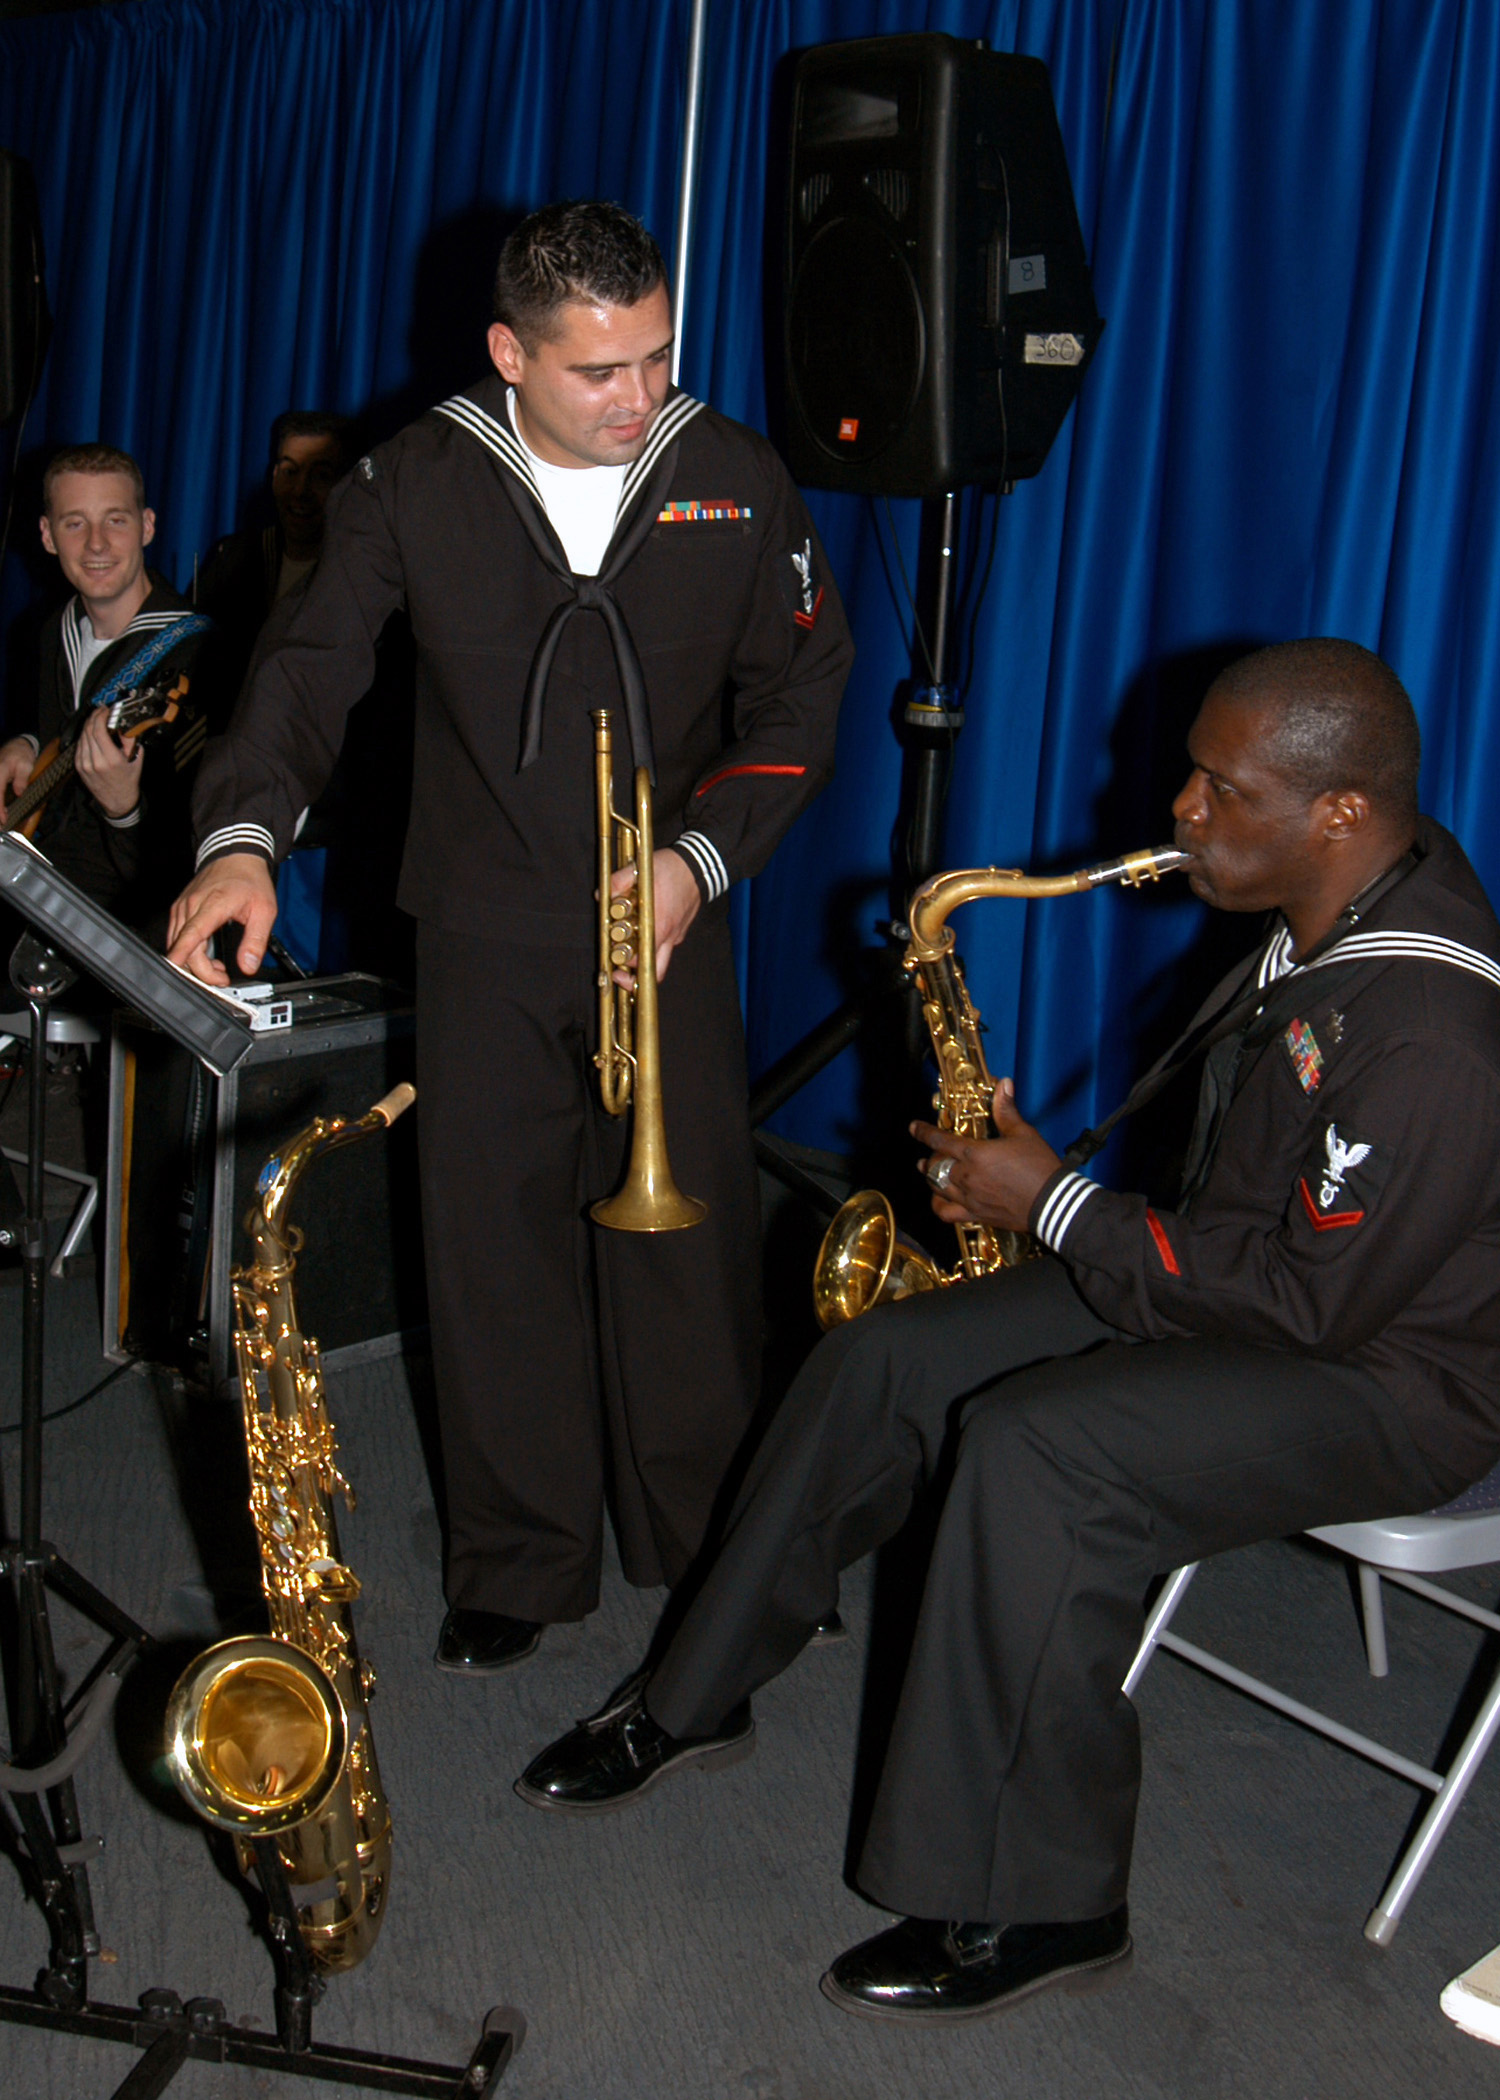 Members of the U.S. 6th Fleet Navy Band practice playing the Cyprus and U.S. national anthems before a reception onboard Nimitz Class Aircraft Carrier USS DWIGHT D. EISENHOWER (CVN 69) during their three-day port visit at Limassol, Cyprus on Oct. 26, 2006. EISENHOWER is currently deployed in support of maritime security operations in the region. (U.S. Navy photo by Mass Communication SPECIALIST SEAMAN Karisha A. Walker) (Released)